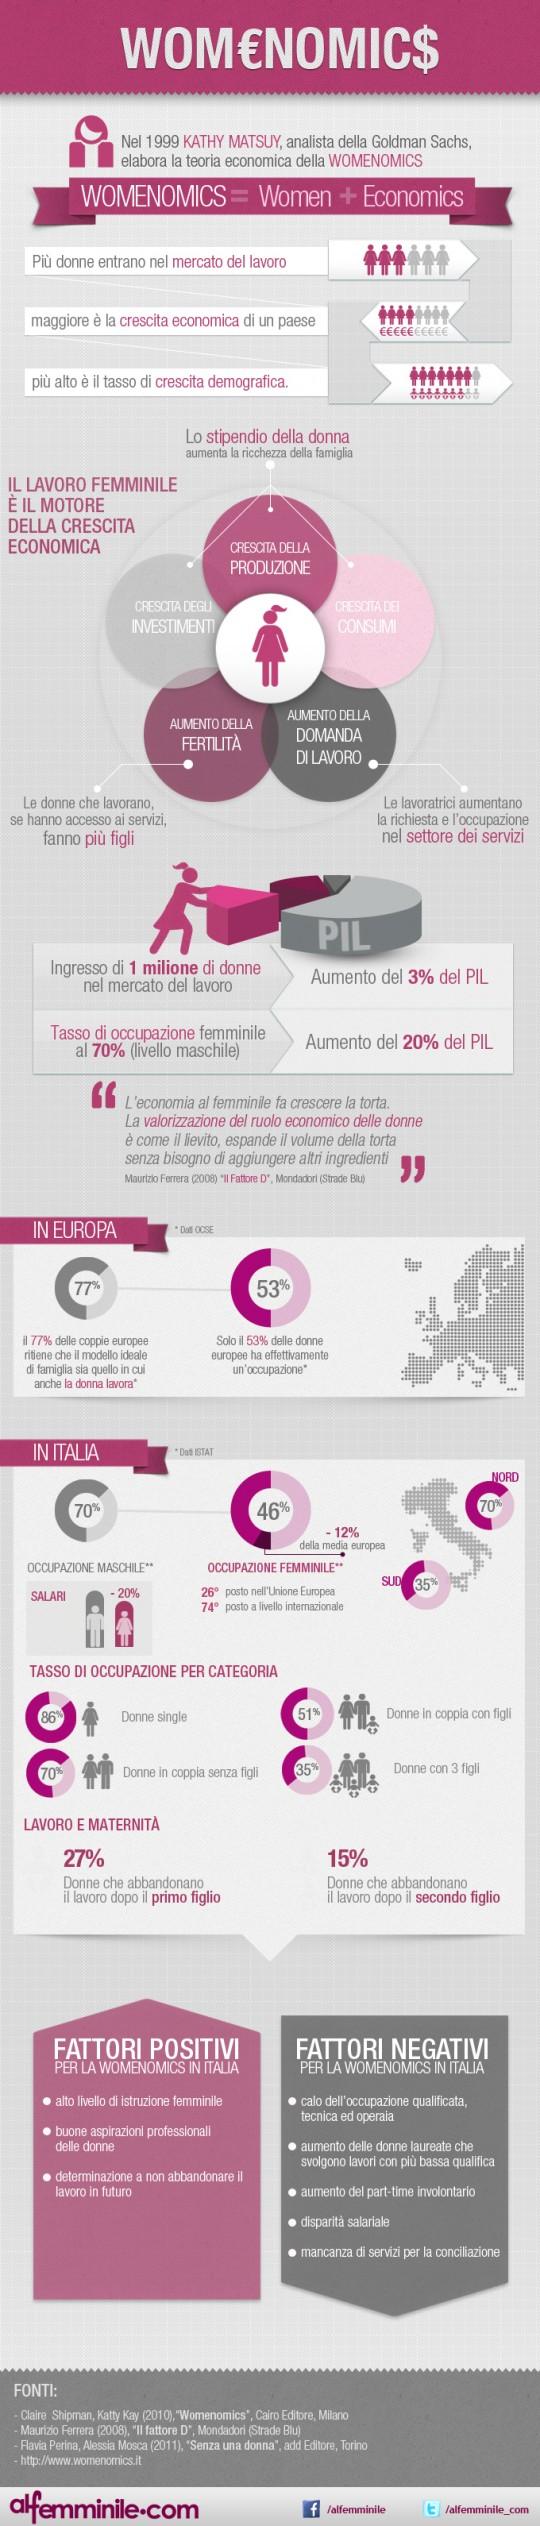 alfemminile-womenomics-infografica